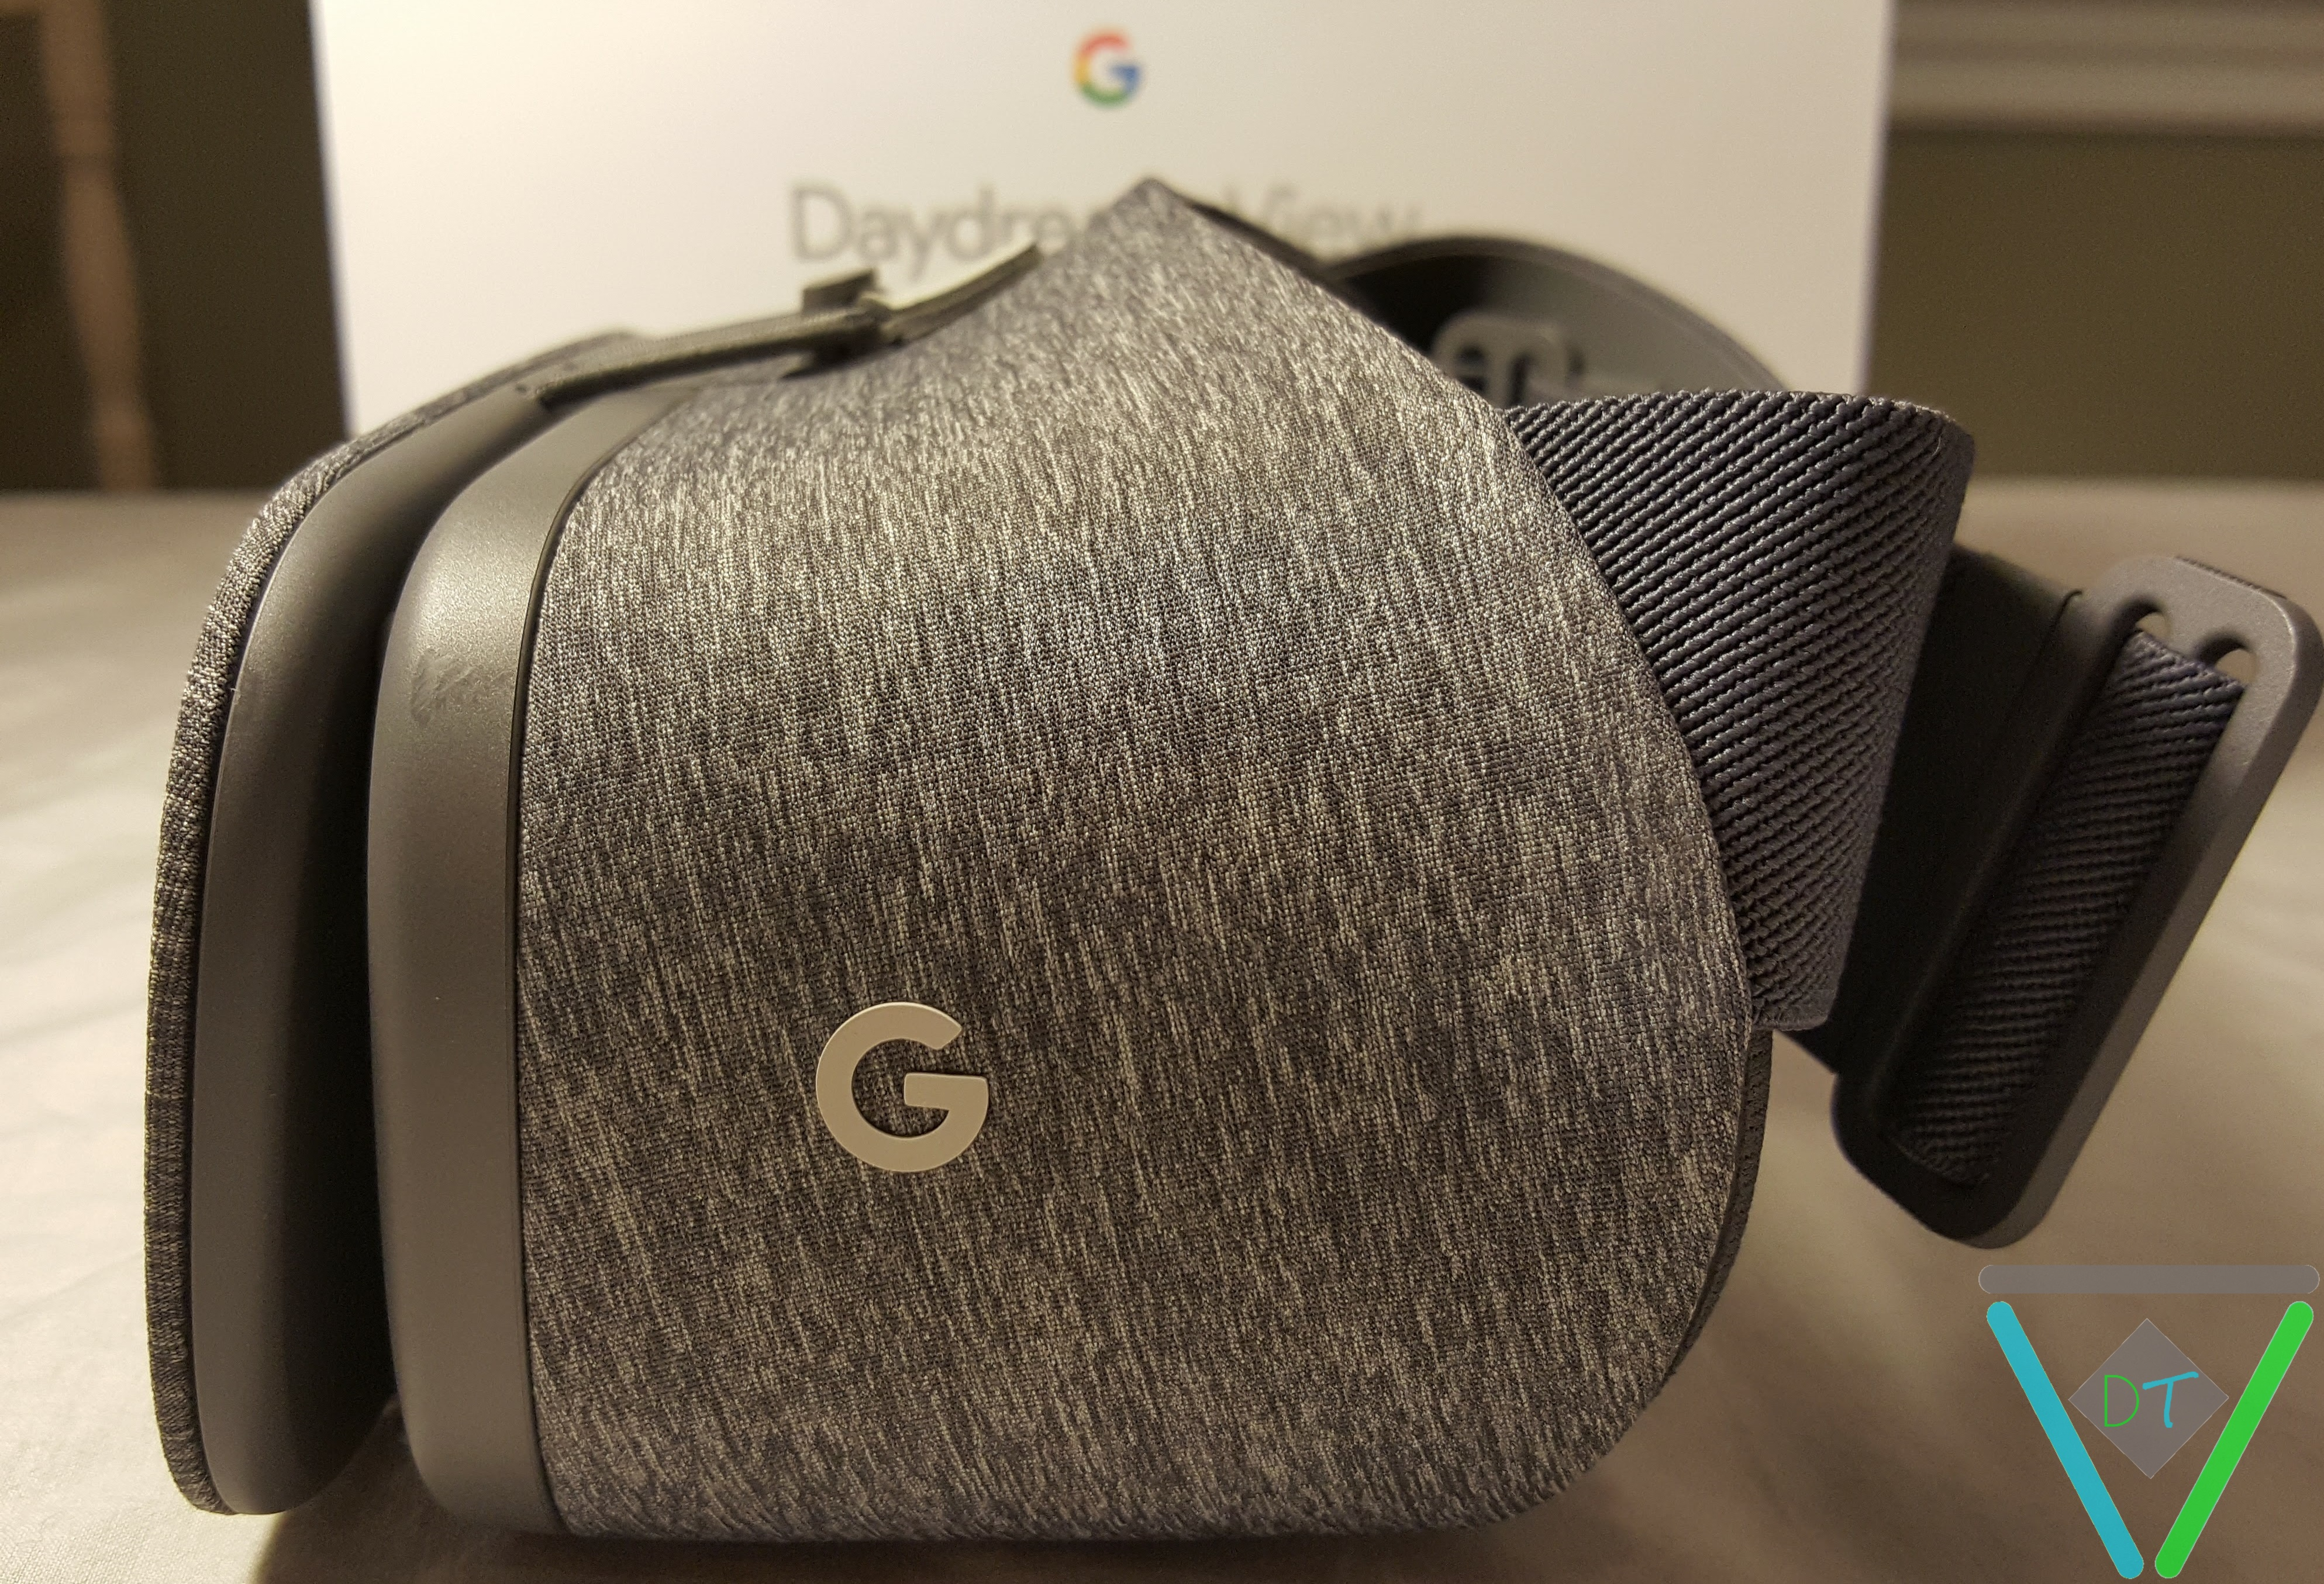 Google_Daydream_View_headset_side_view_DT